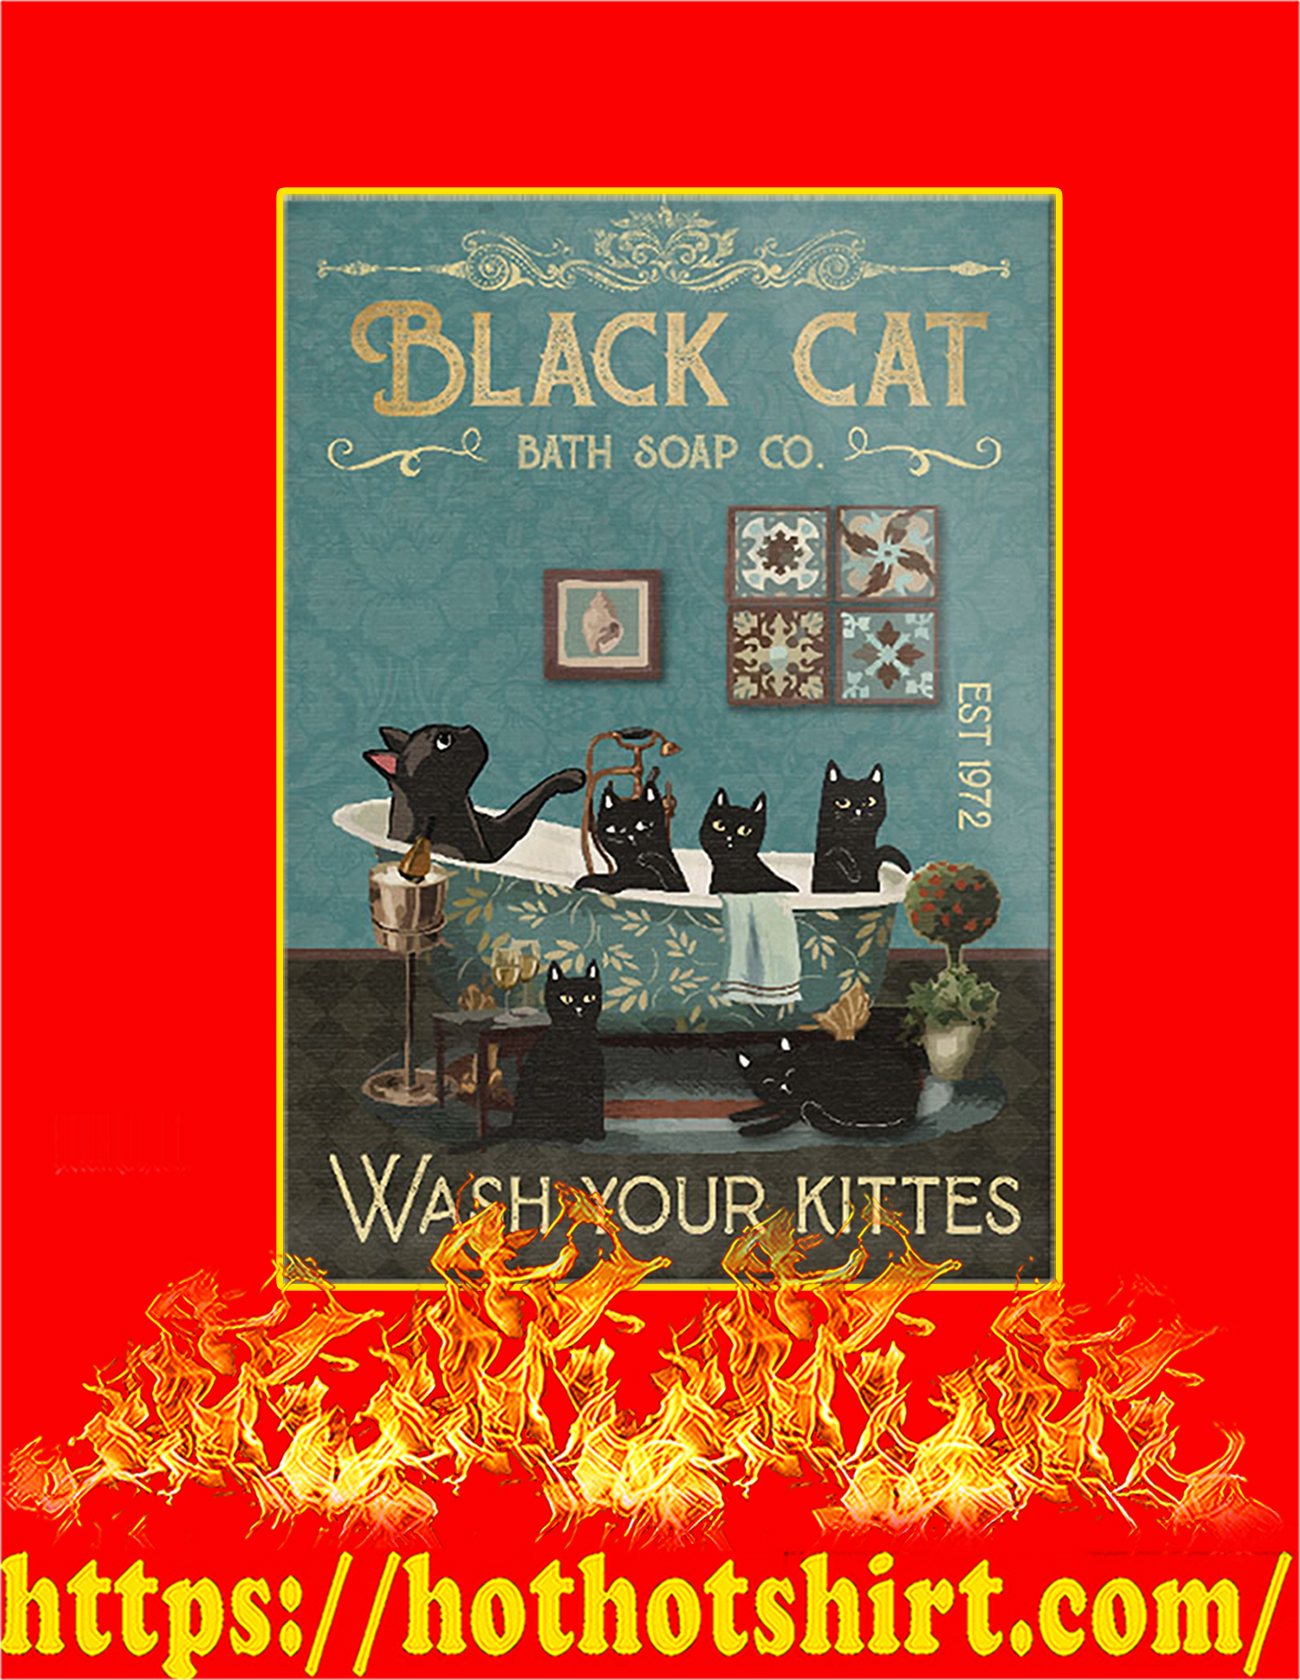 Black cat bath soap co wash your kittes poster - A3